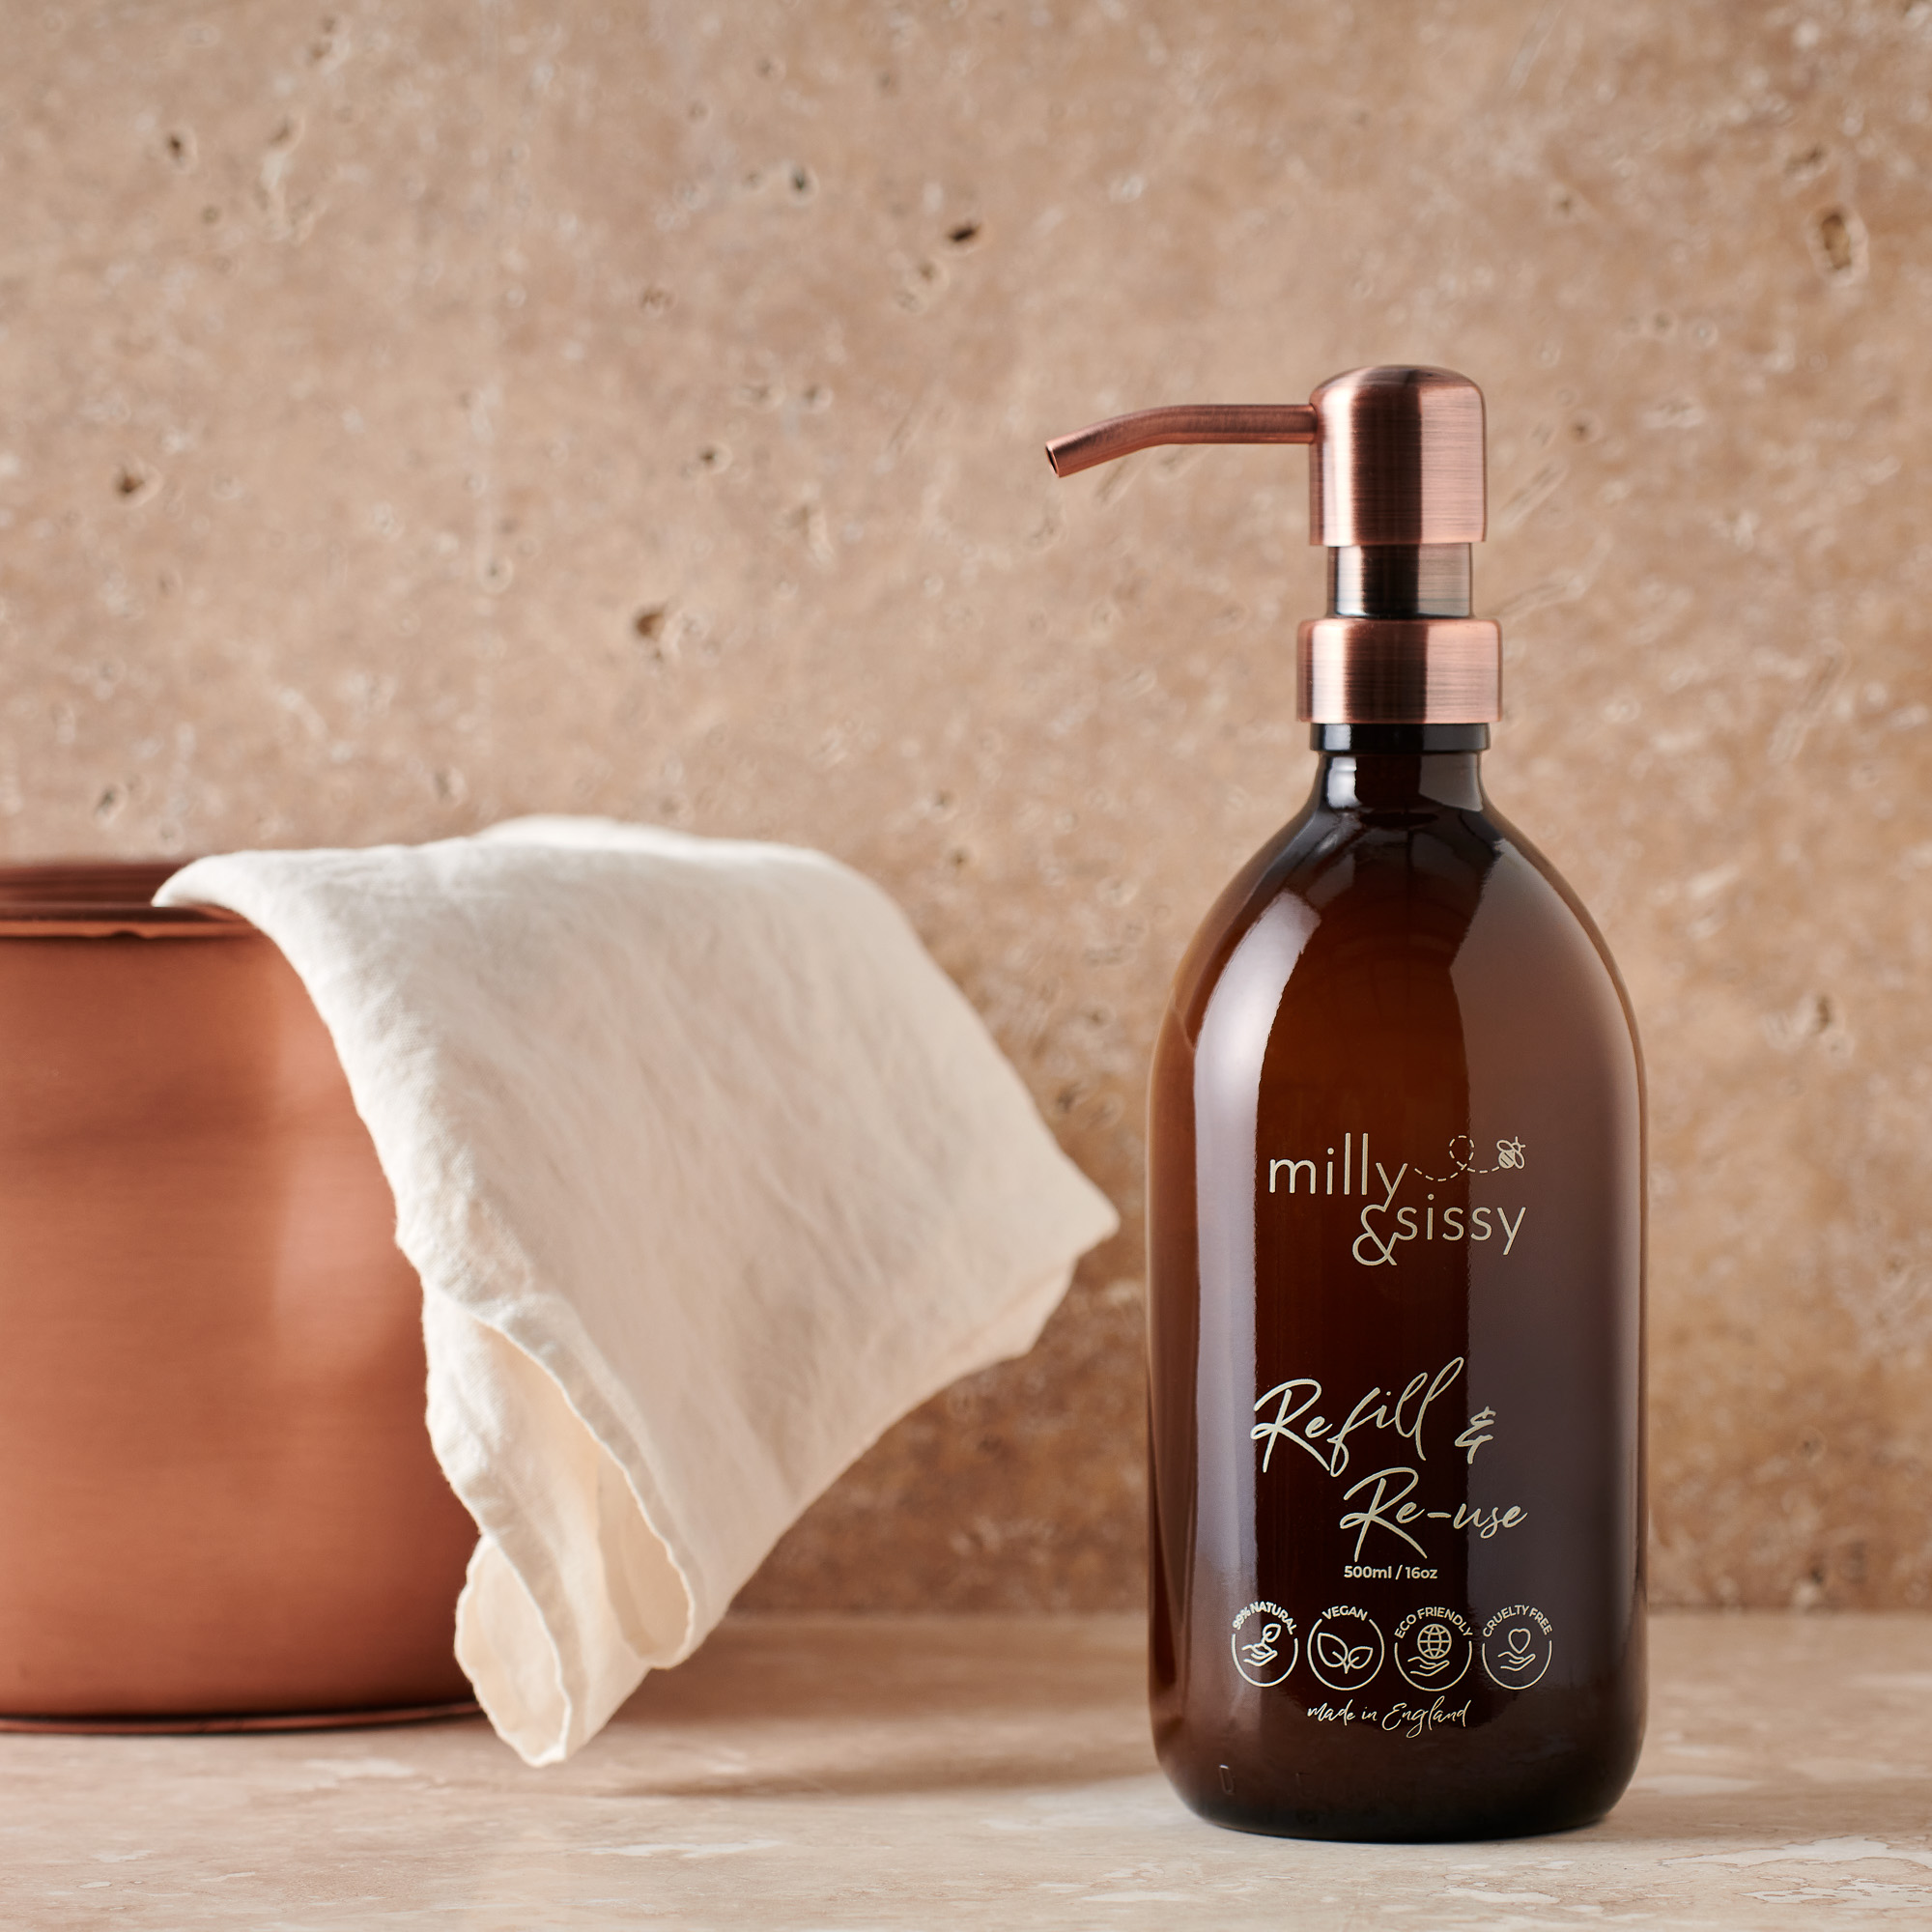 Zero Waste Vegan Hand Wash Trio + Amber Glass Bottle with Pump BATHROOM | CL Milly & Sissy